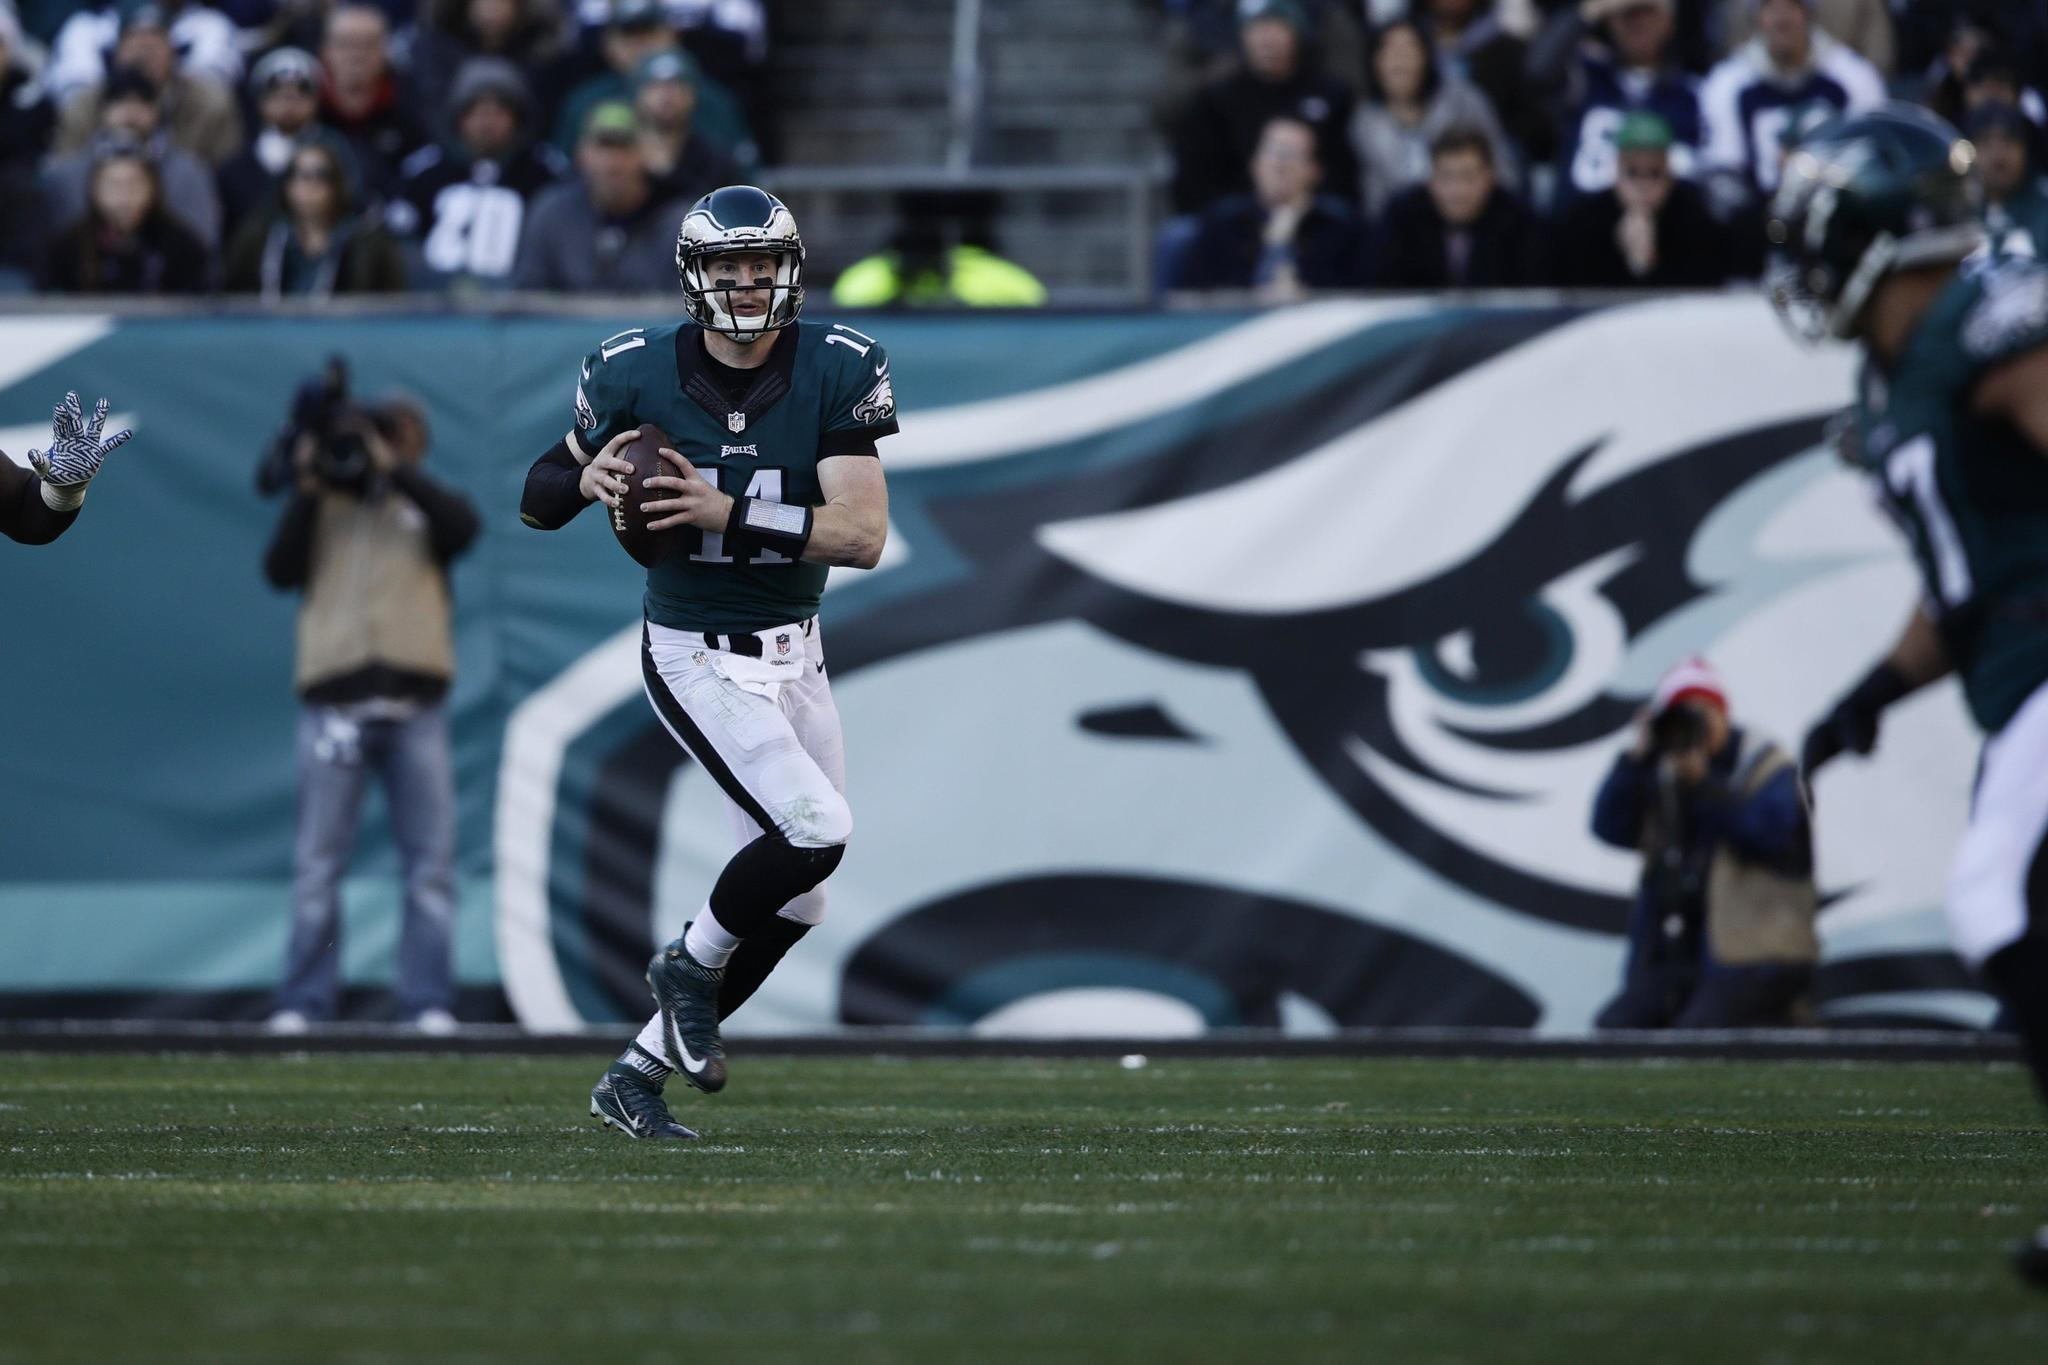 Staying sharp is Eagles QB Carson Wentz's top priority - The ...